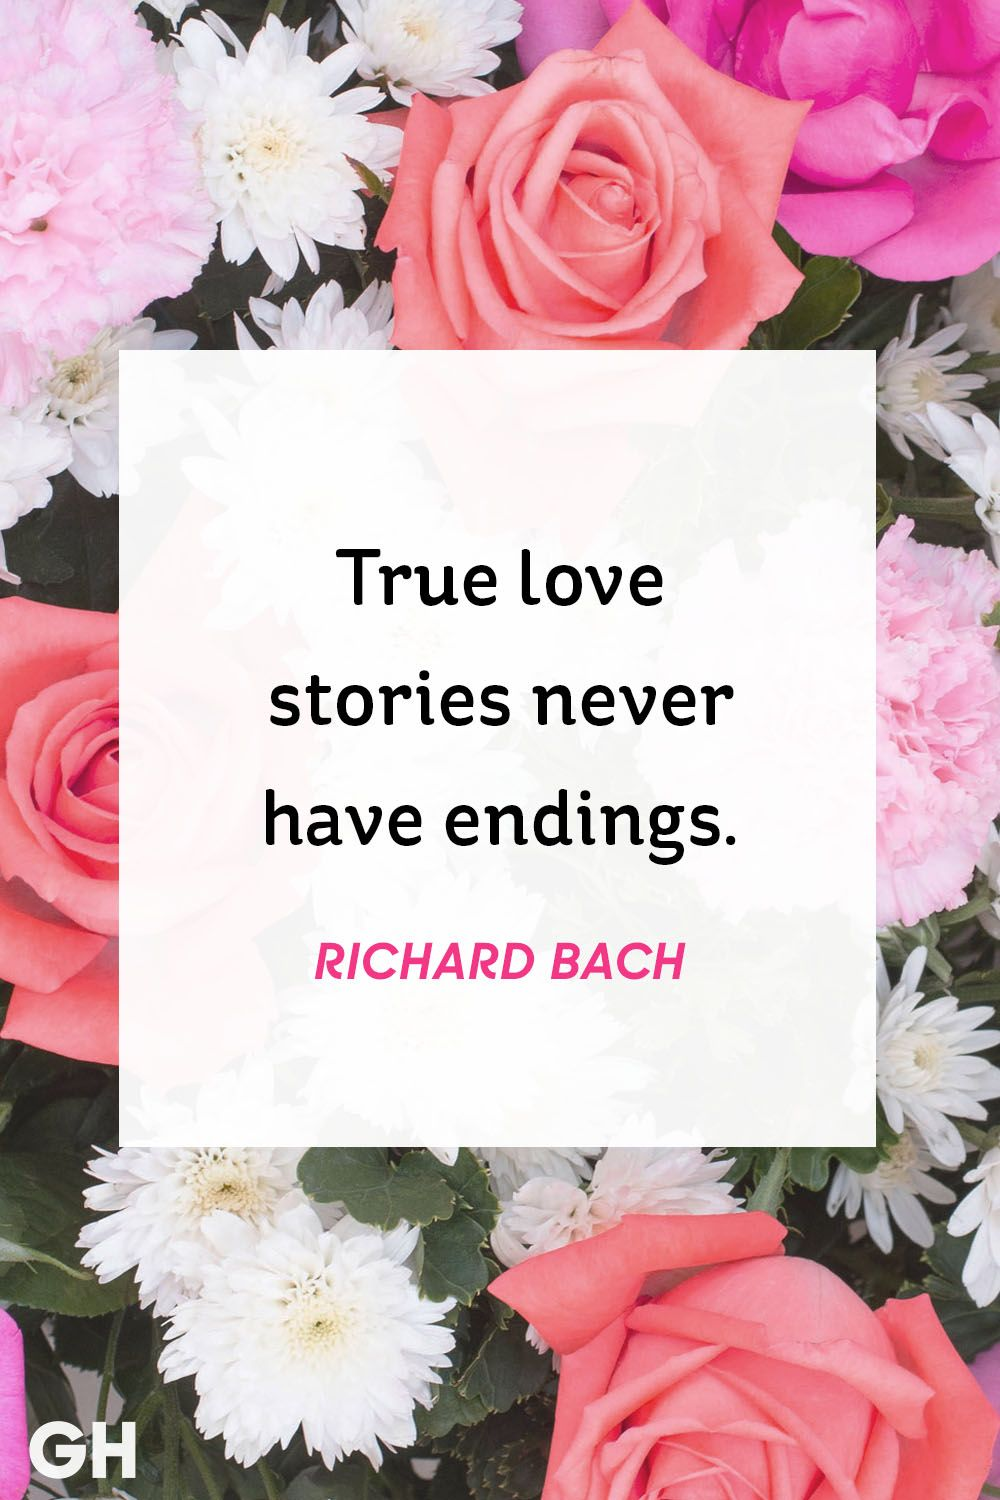 50 Best Love Quotes of All Time - Cute Famous Sayings About Love